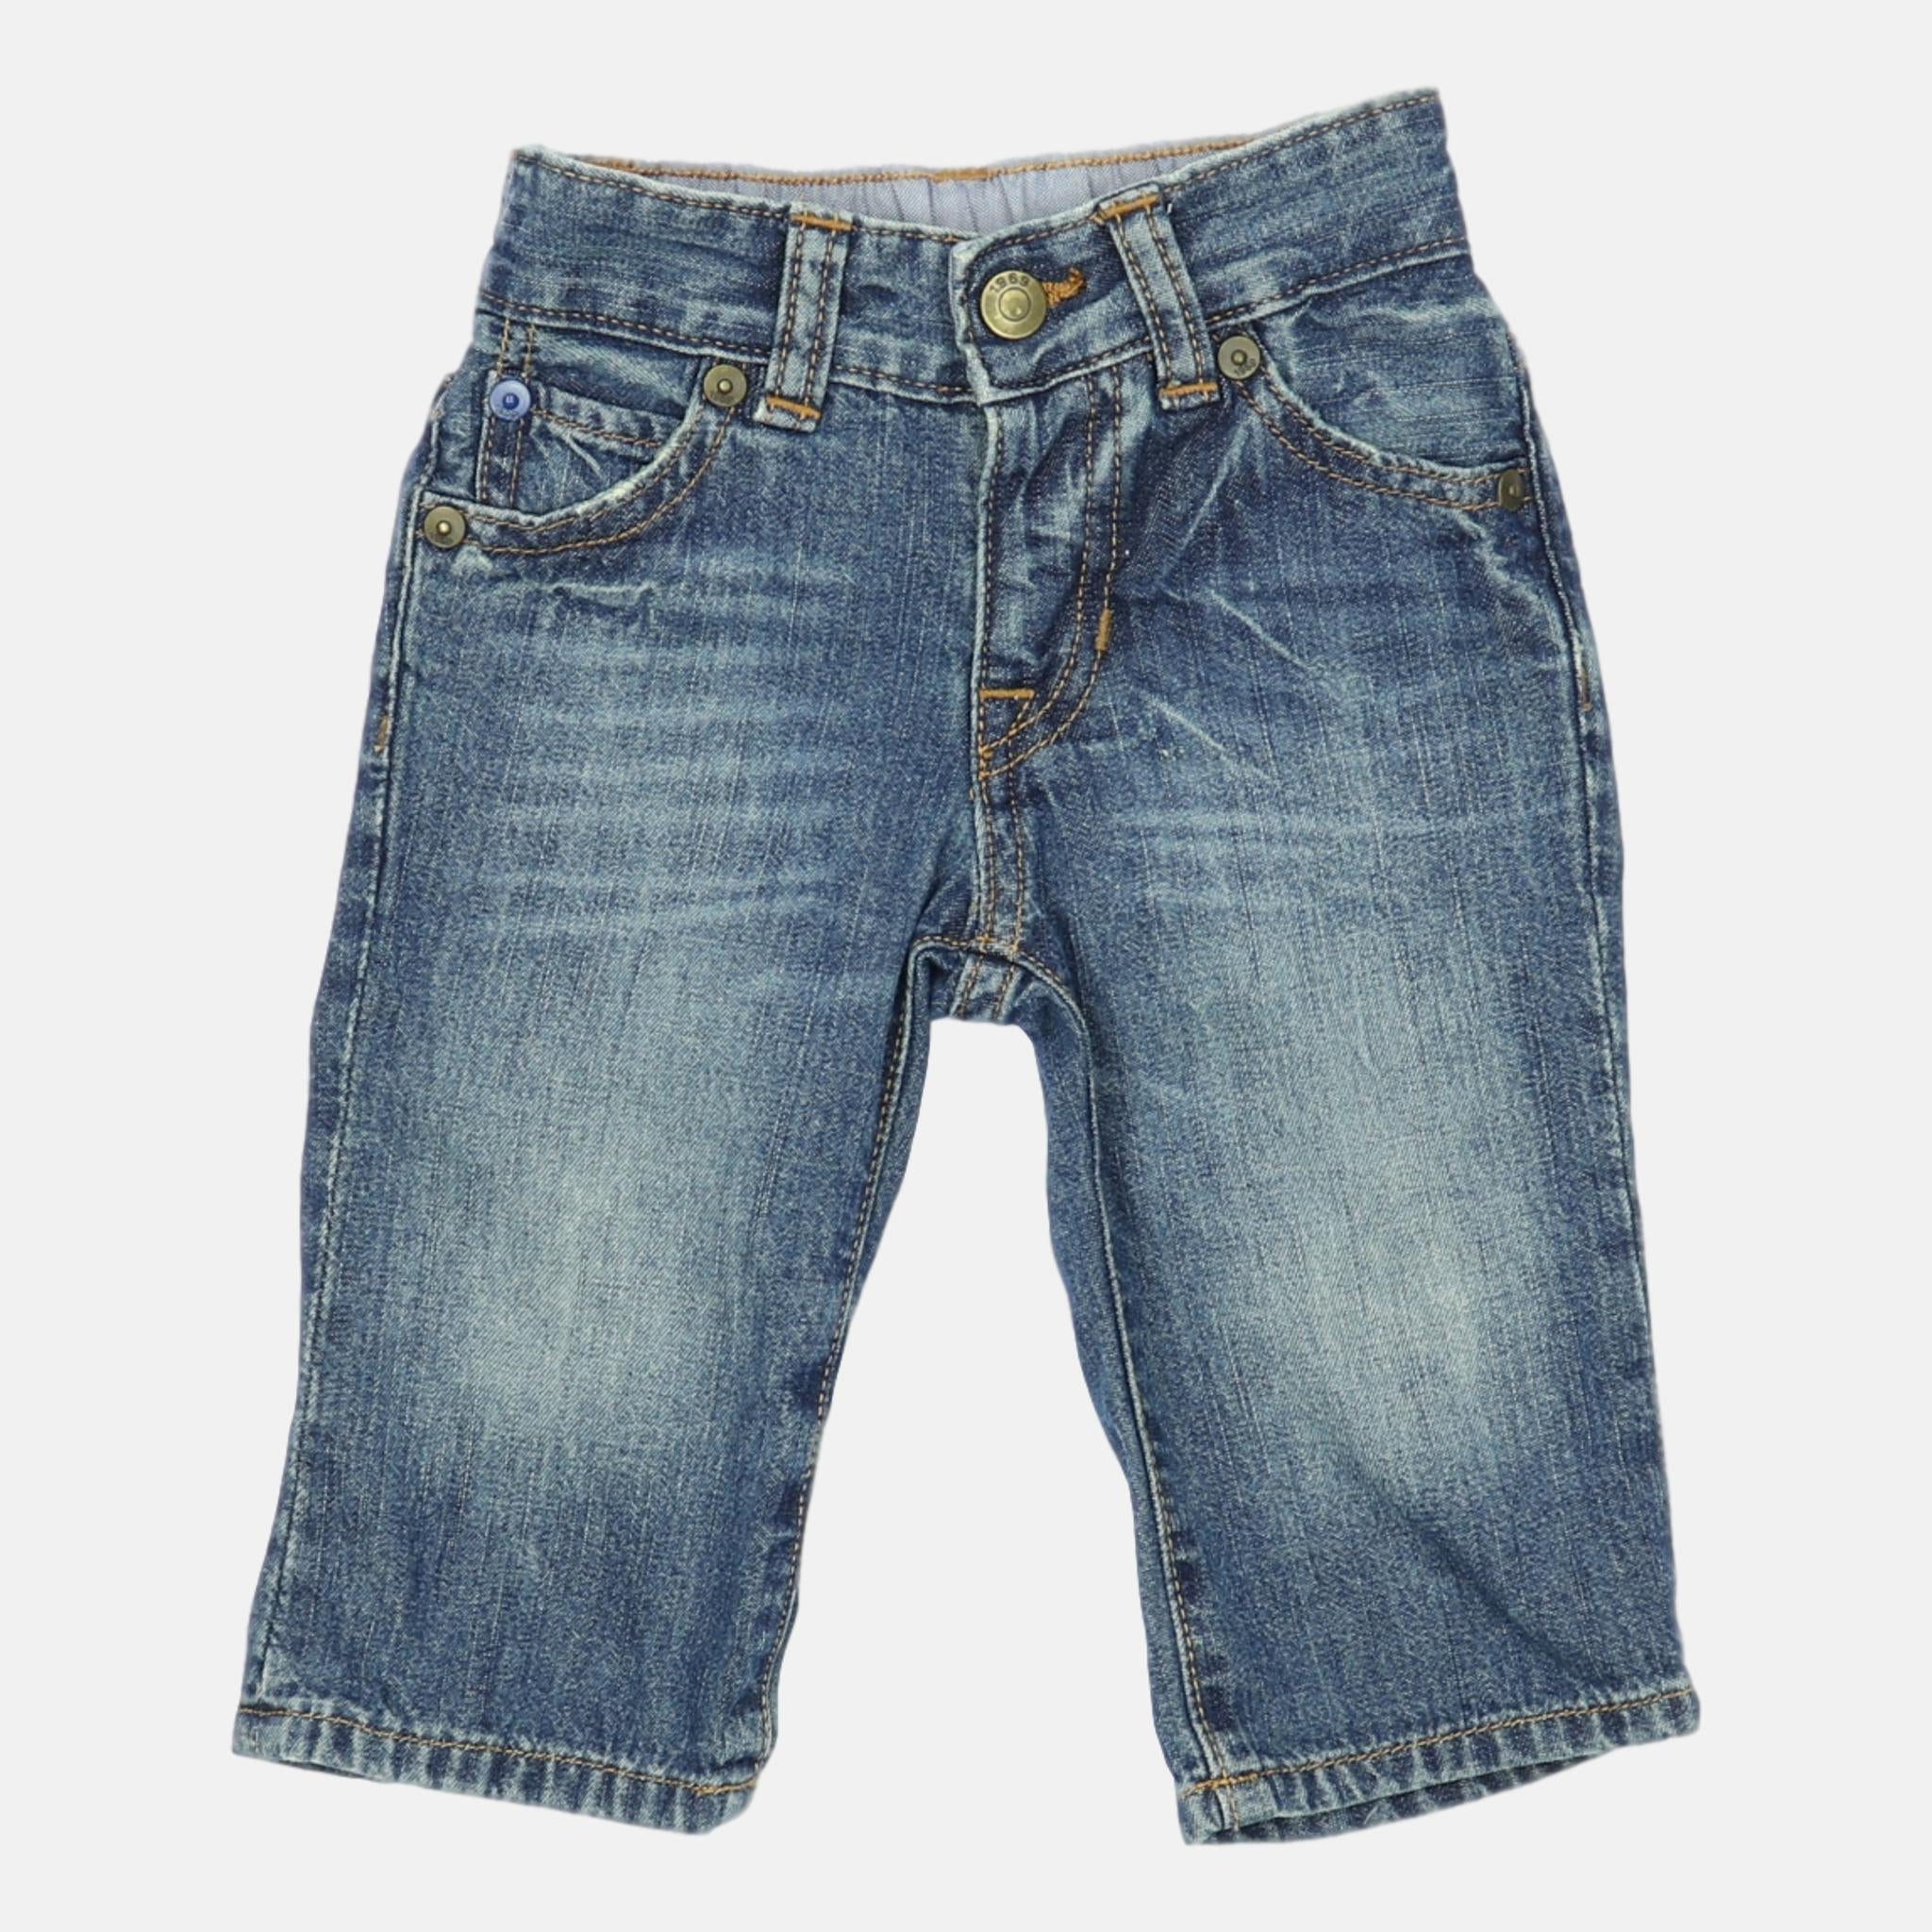 Jeans, 6-9 Months